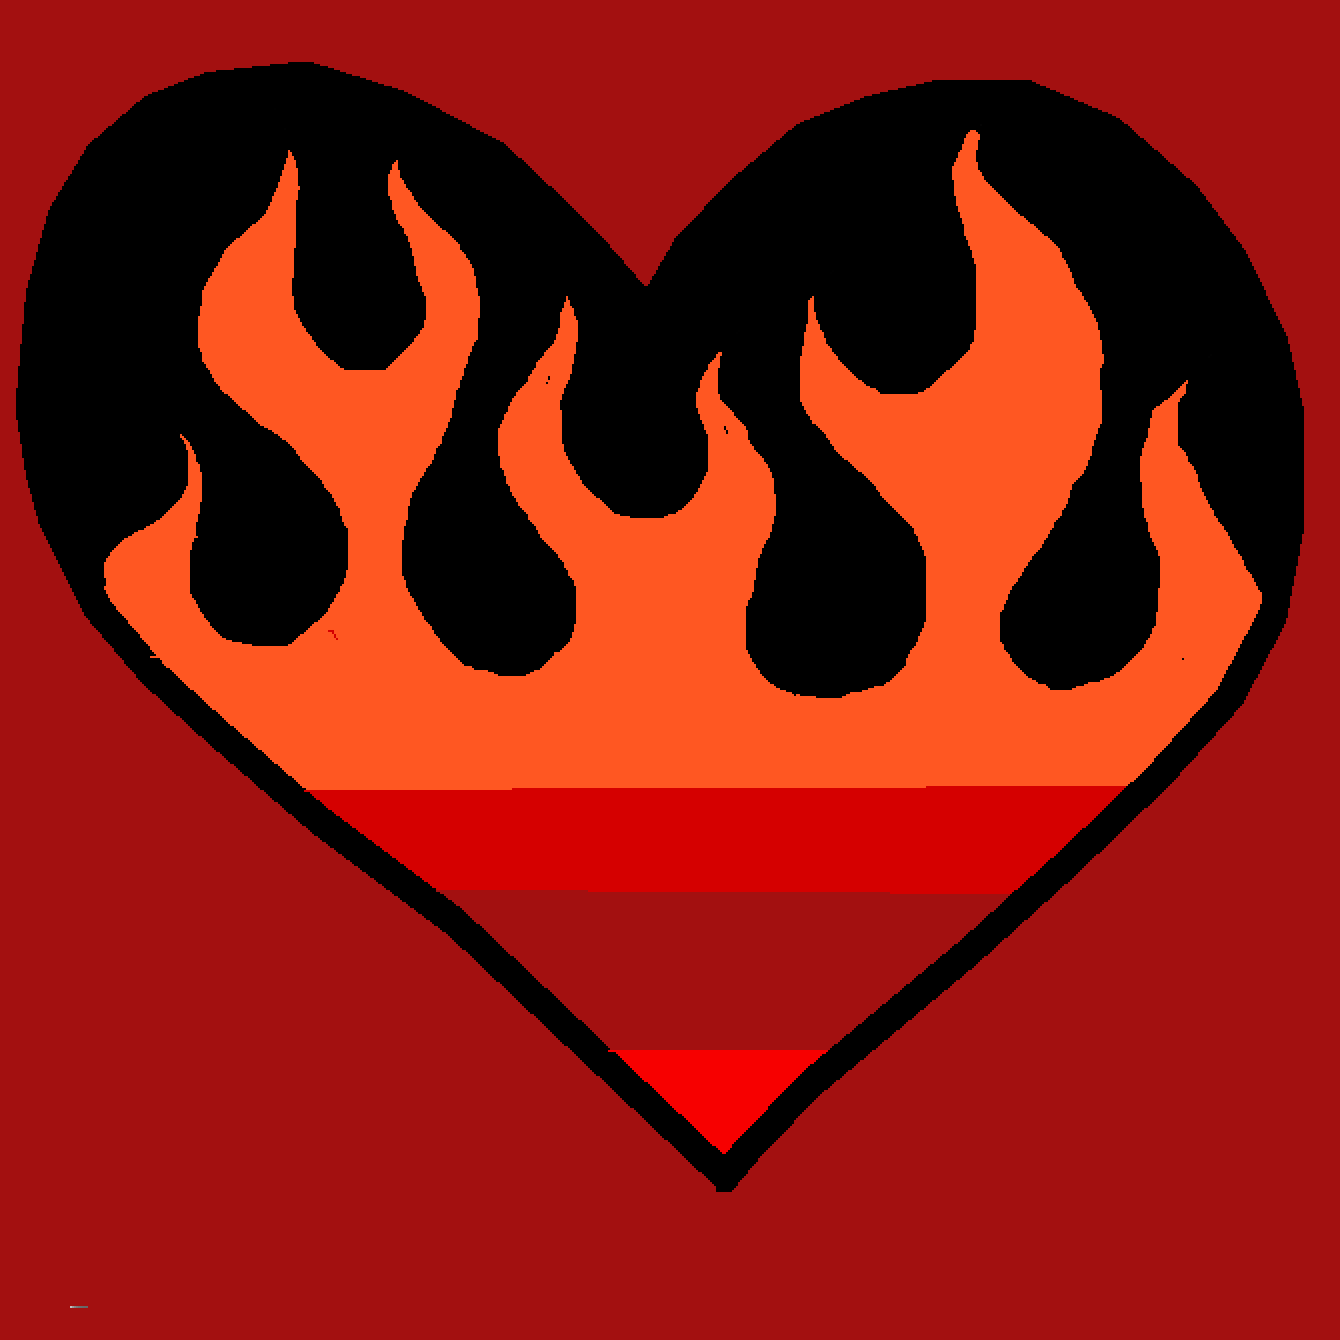 my hearts on fire  by 12614853